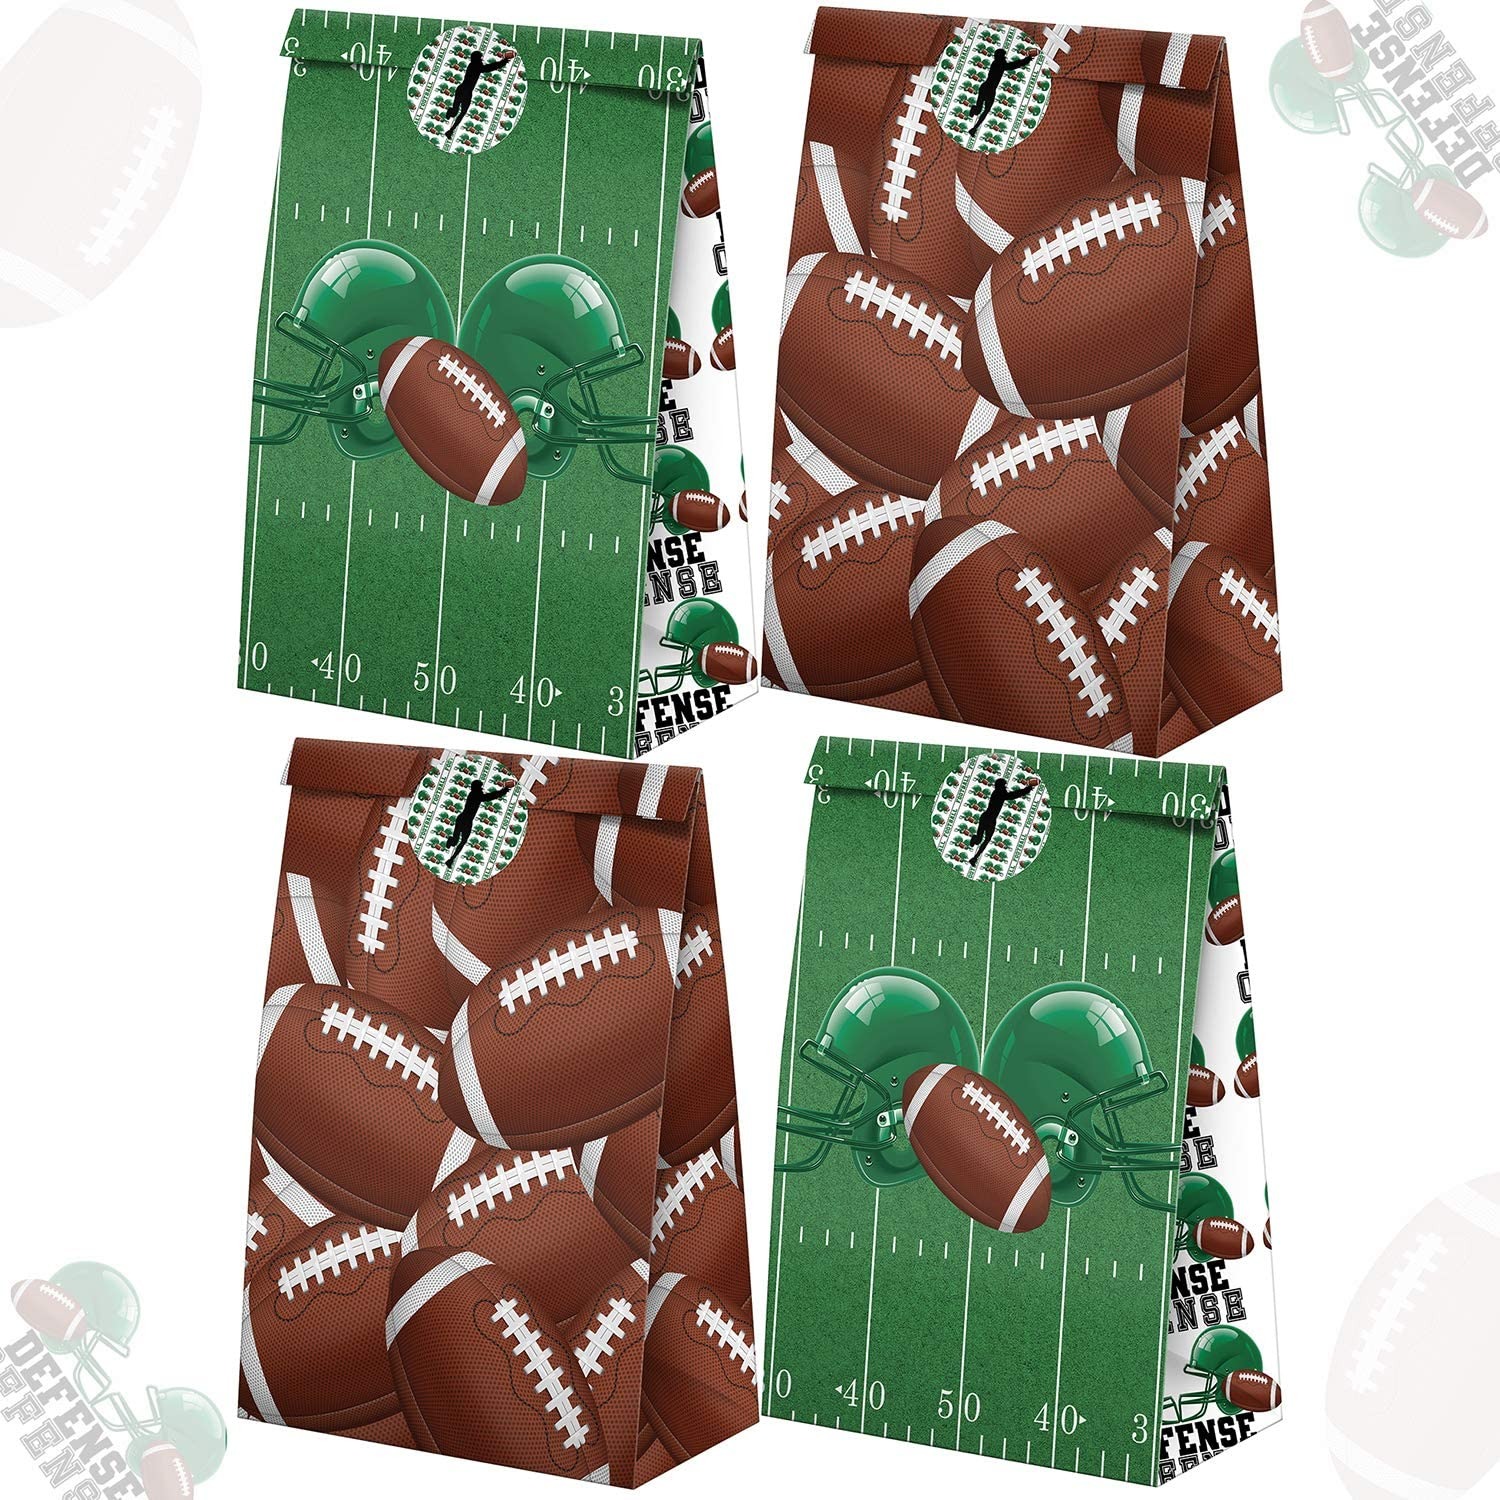 Football Party Favor 10 Pack 10 Assorted Football Cards Per Pack Creative HASSLE FREE Pre Assembled Gift Bags Kids Party Supplies